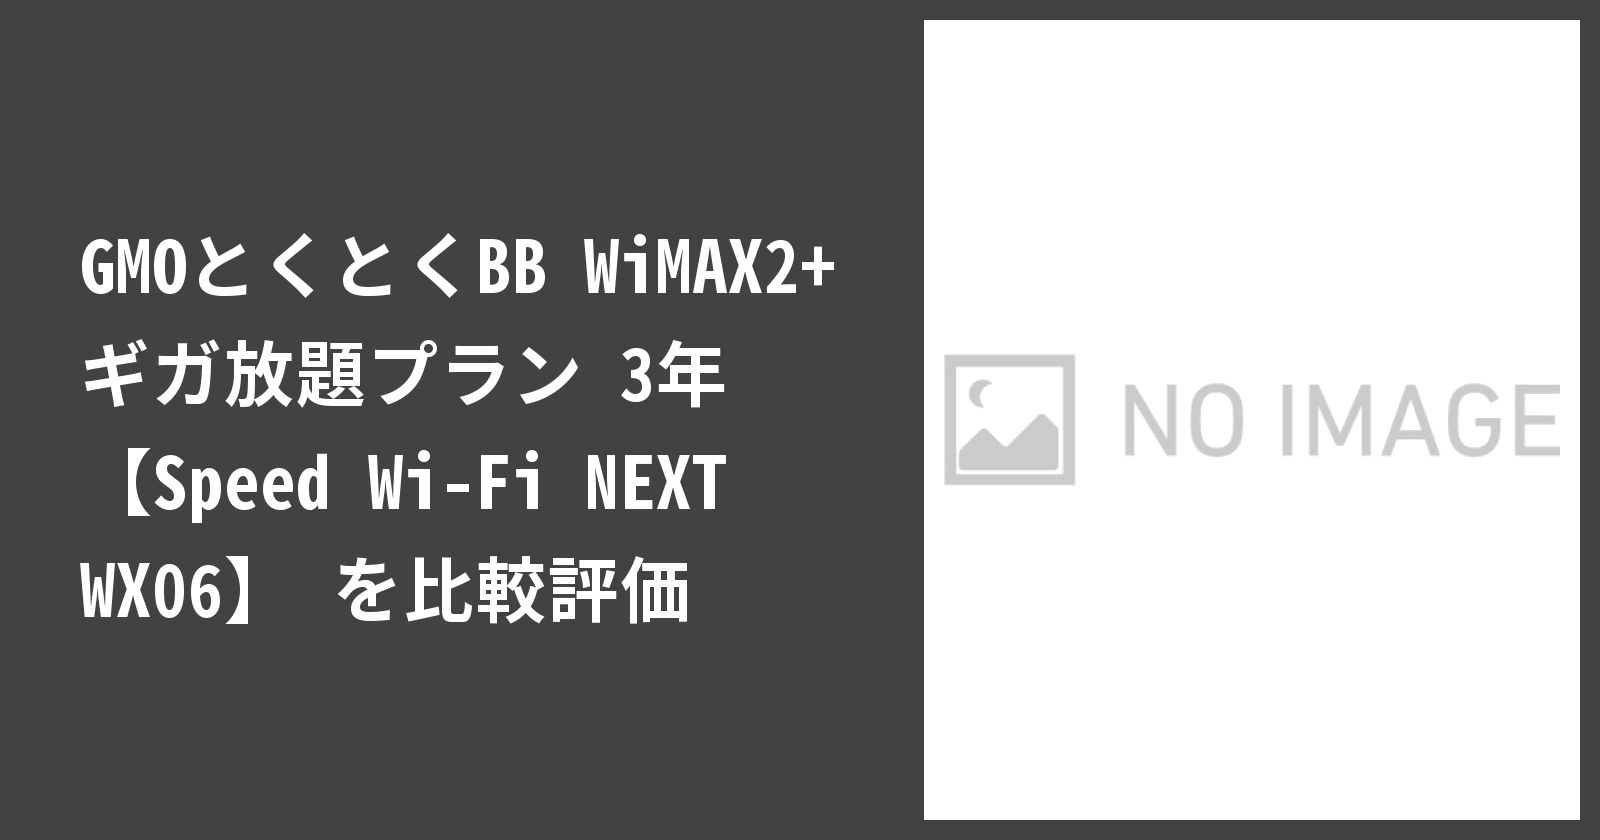 GMOとくとくBB WiMAX2+ ギガ放題プラン 3年 【Speed Wi-Fi NEXT WX06】を徹底評価